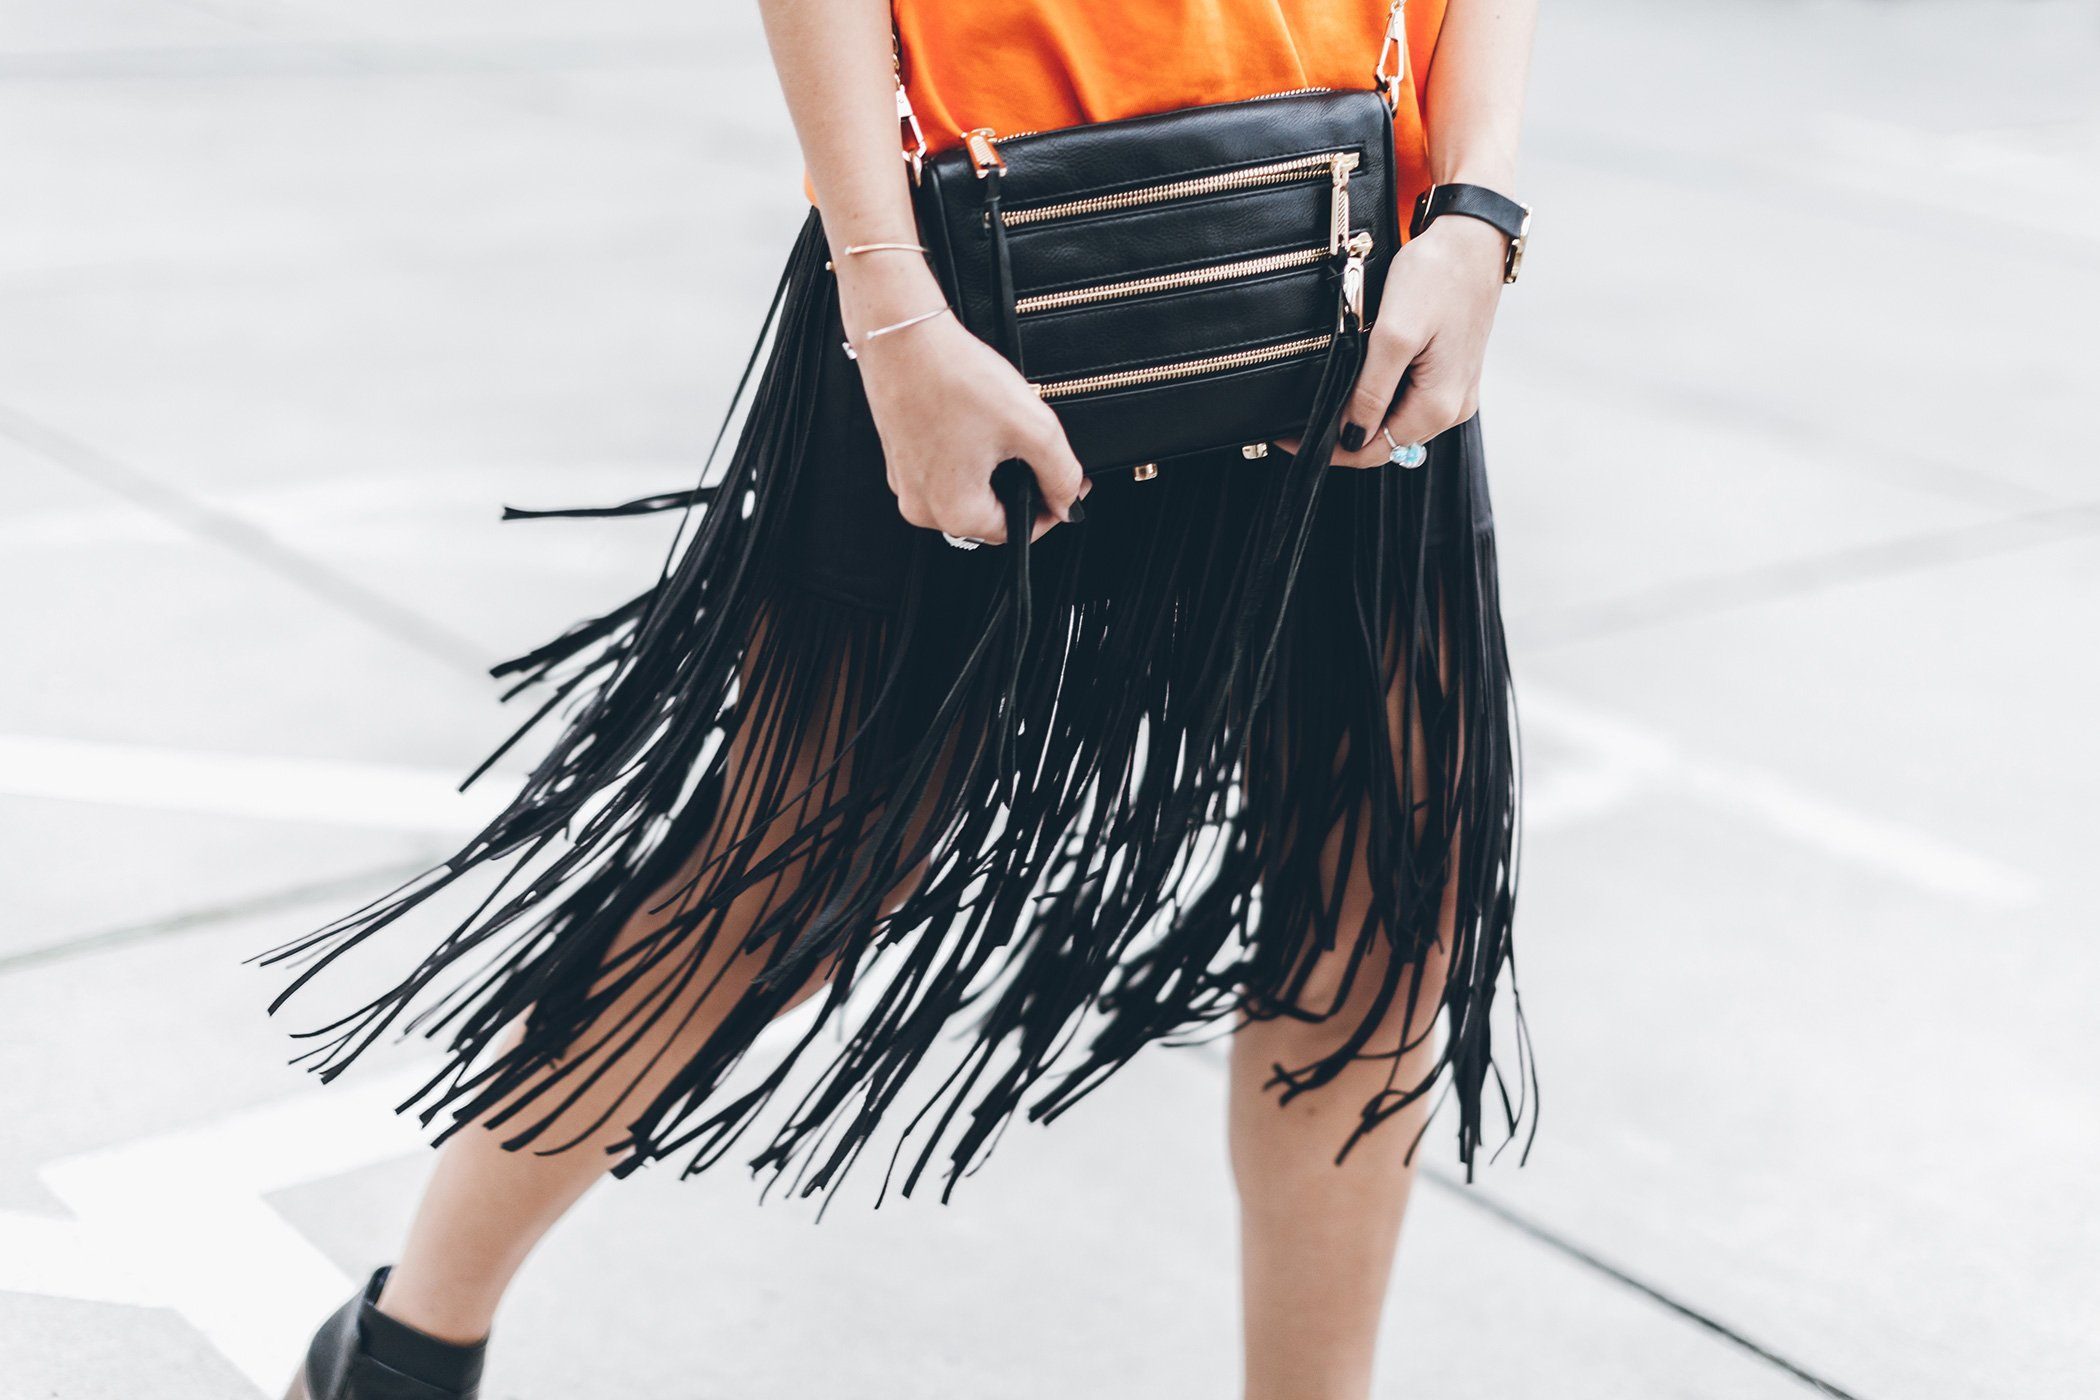 mikuta-fringe-skirt-orange-sweater-4